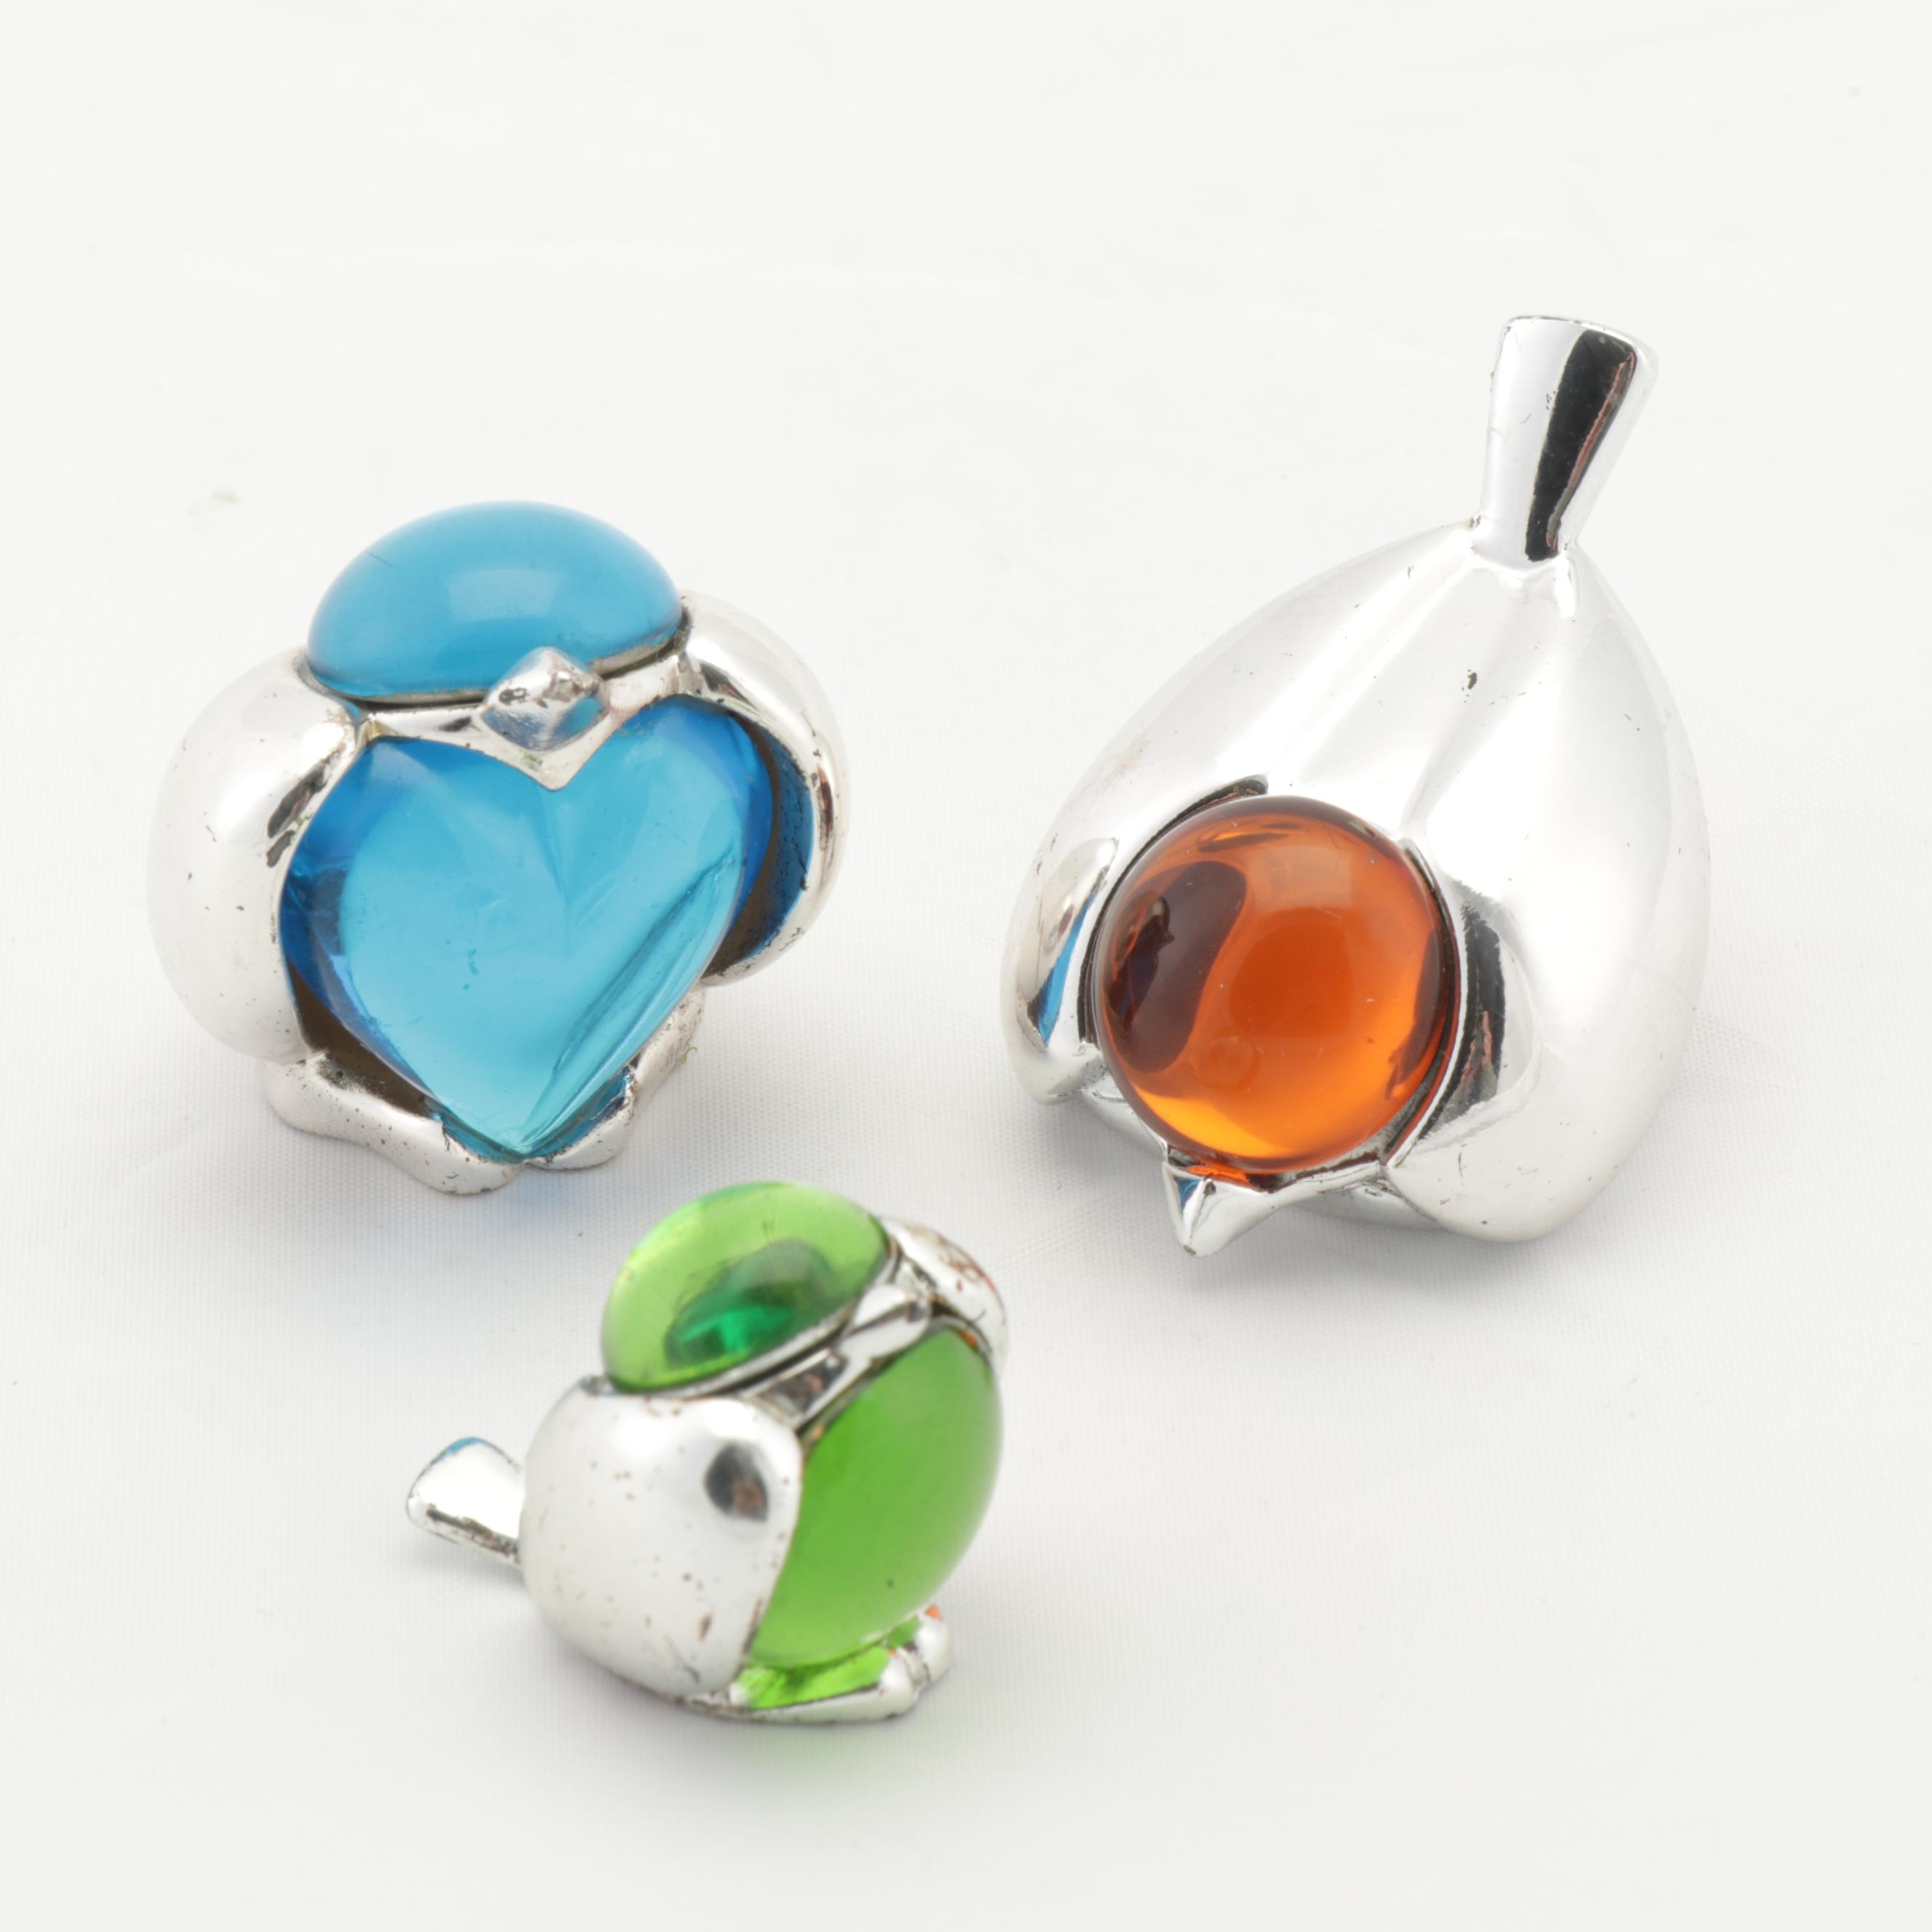 Christofle Silver Plated Glass Bird Paperweights